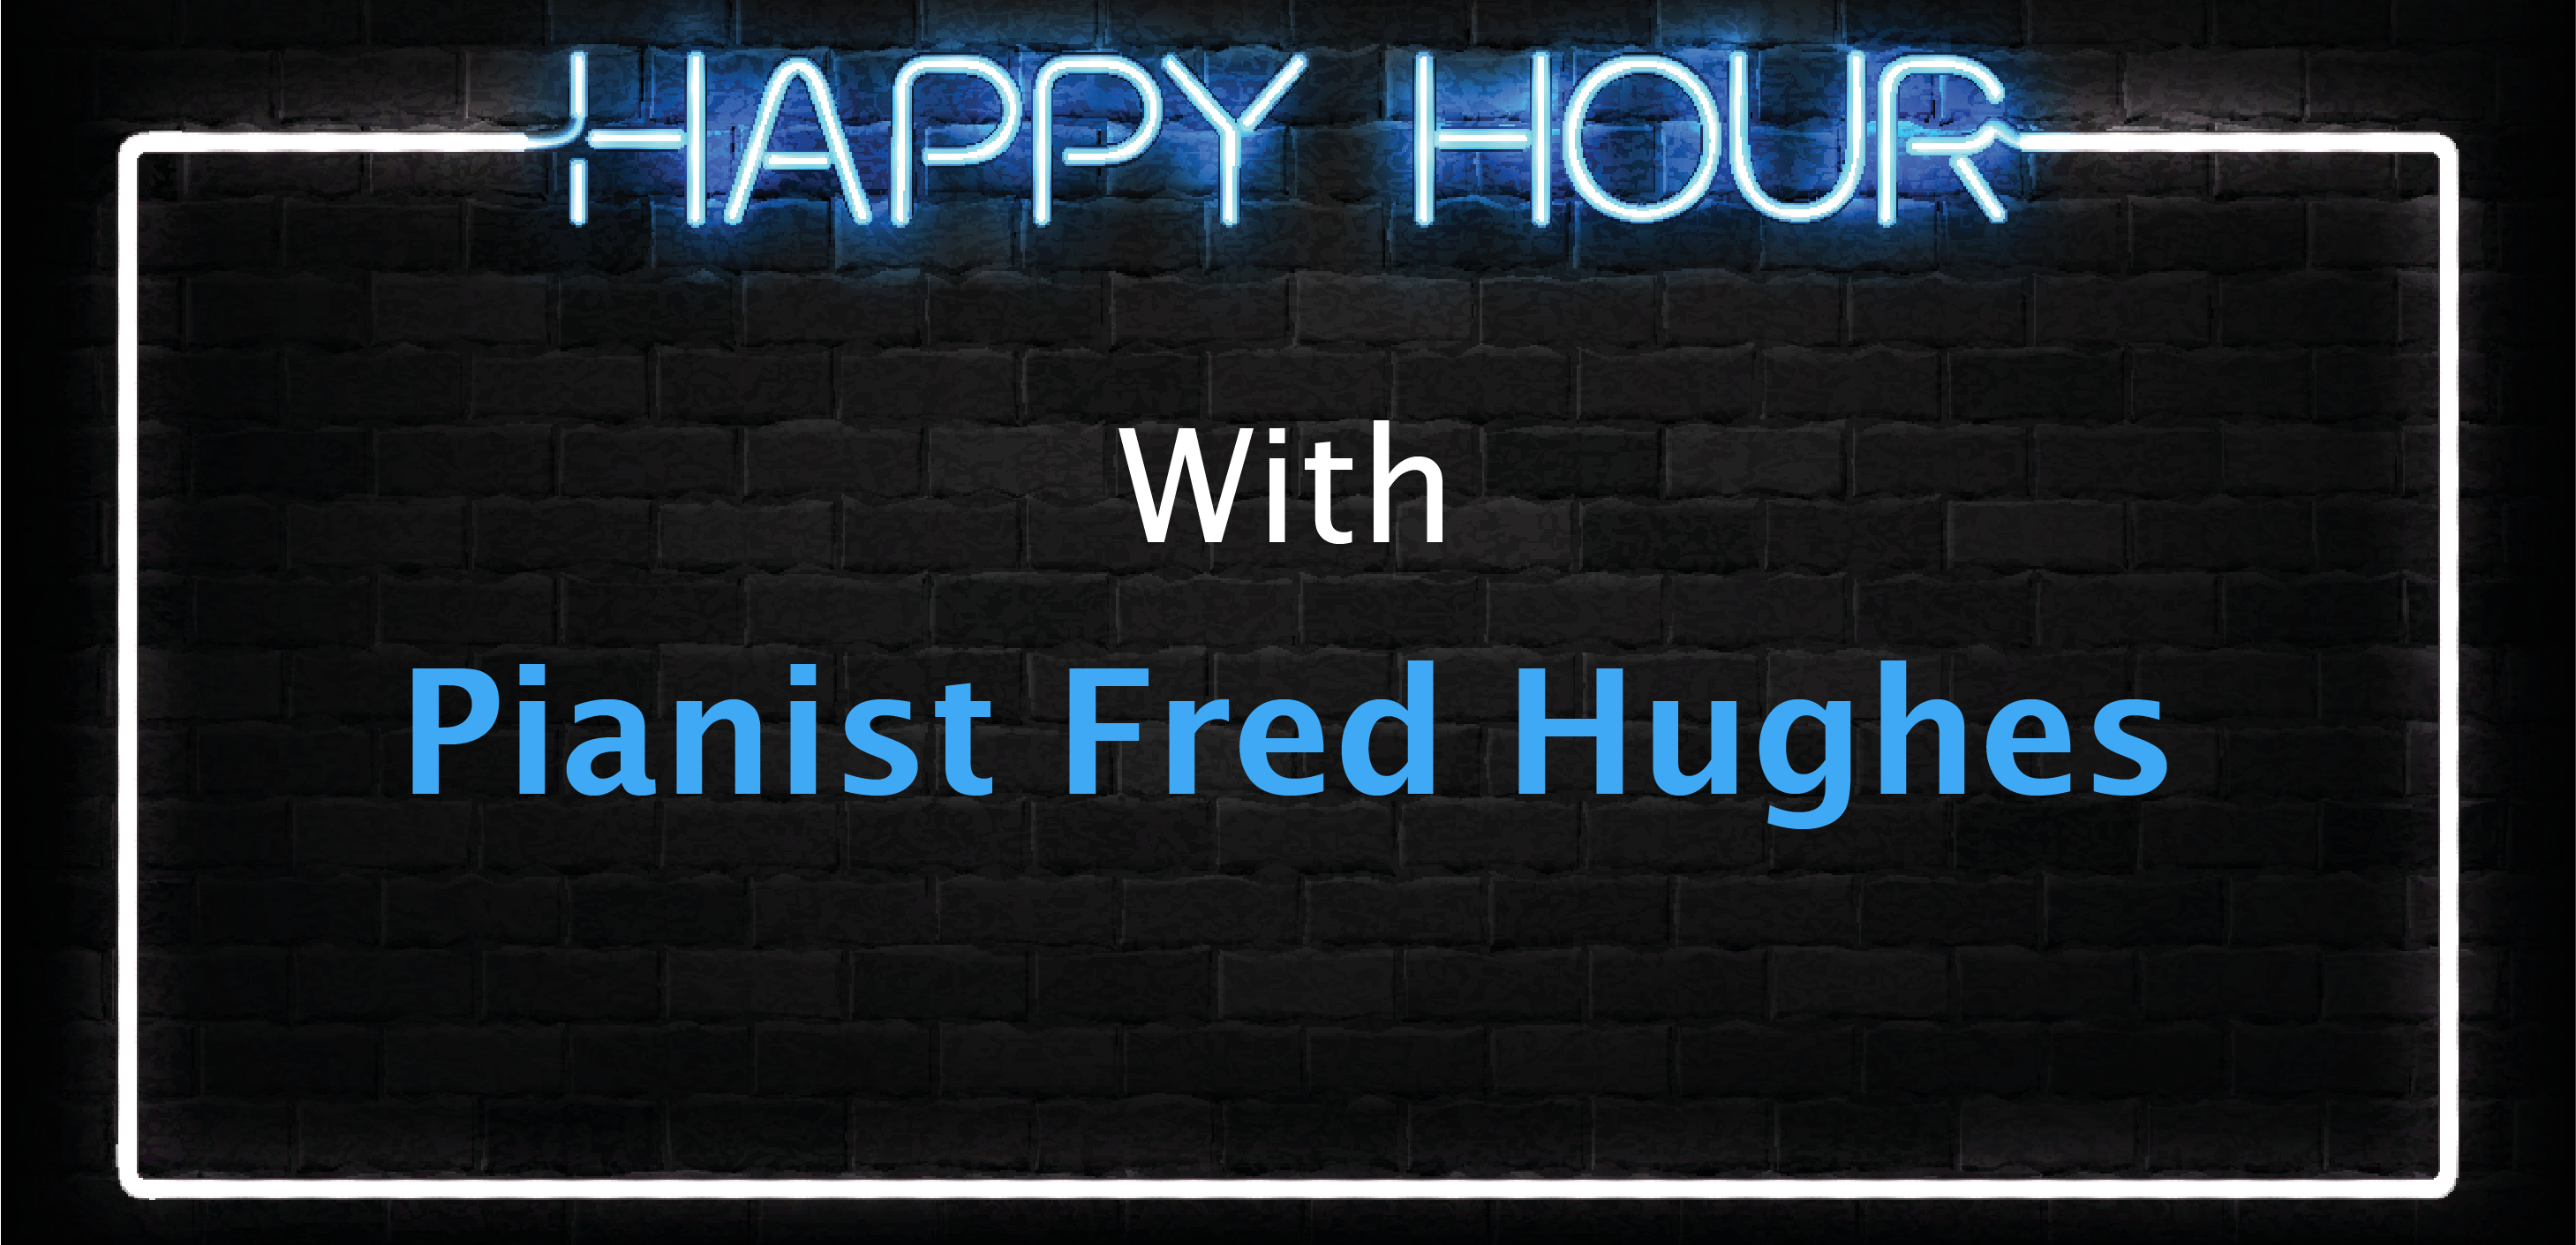 Happy Hour With Pianist Fred Hughes